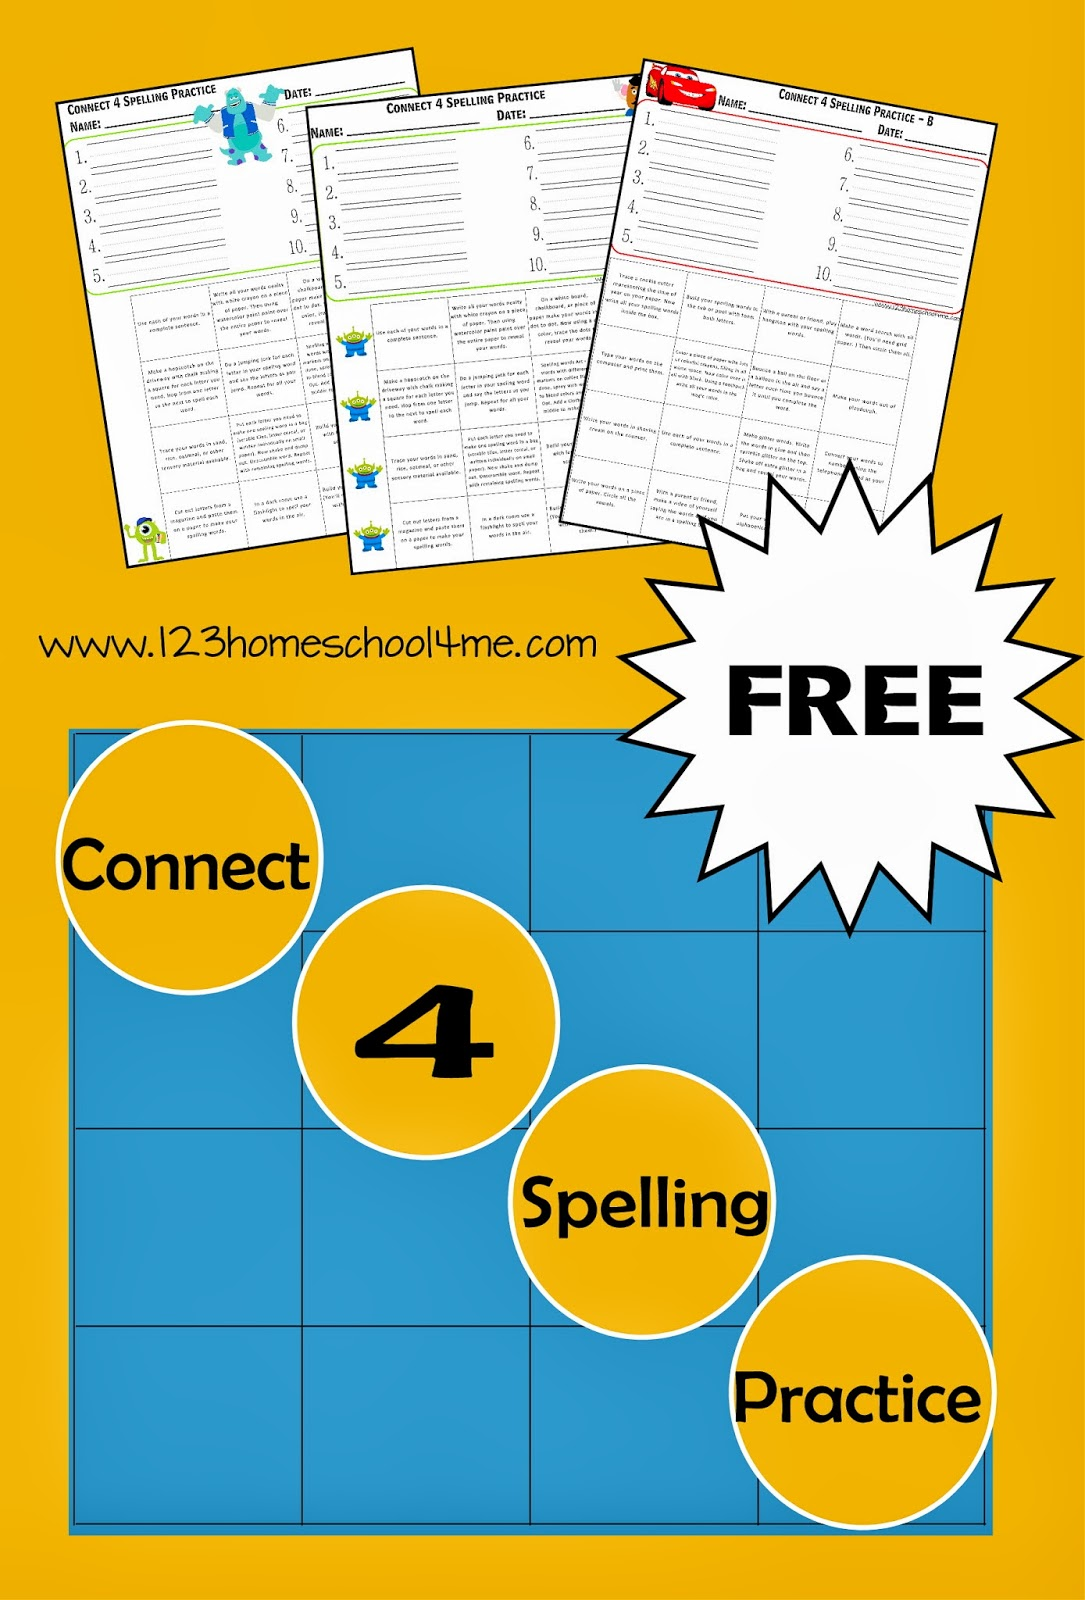 Free connect 4 spelling practice free printable connect 4 spelling practice so many fun spelling activities and spelling games to pronofoot35fo Image collections